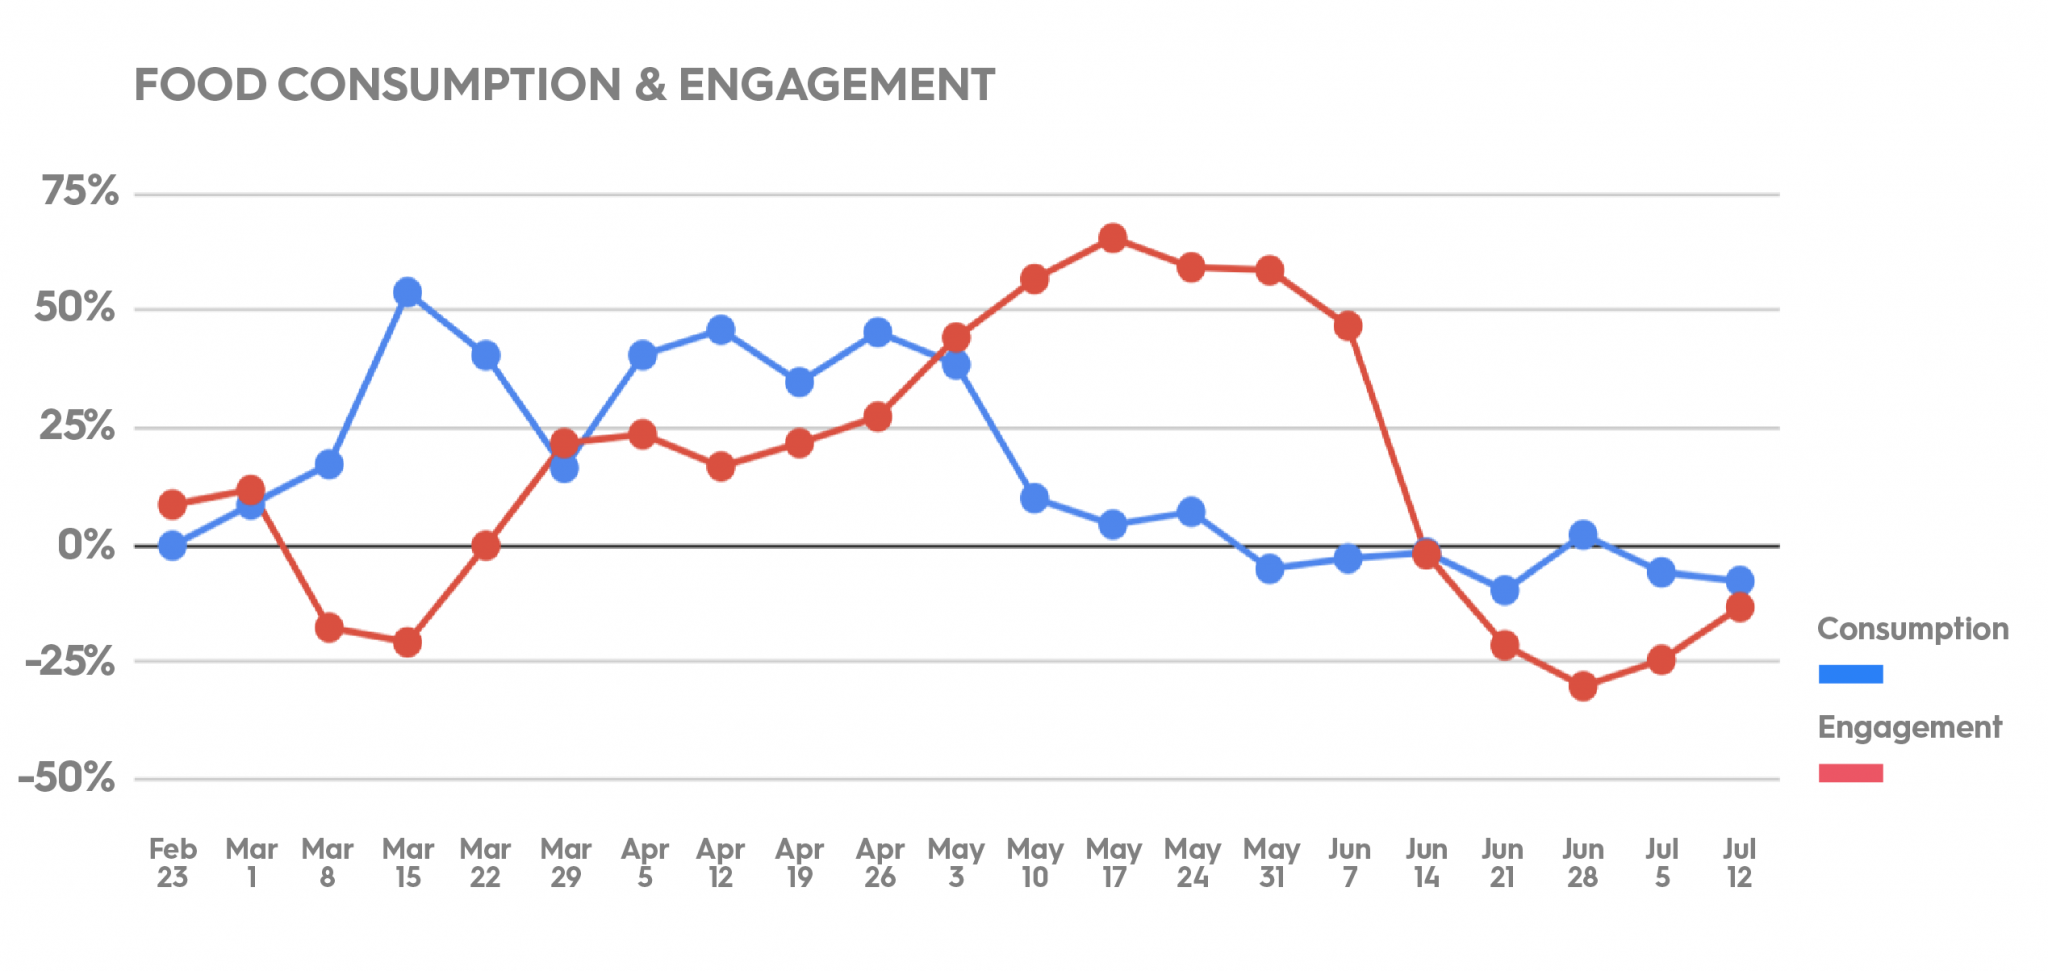 Food consumption and engagement